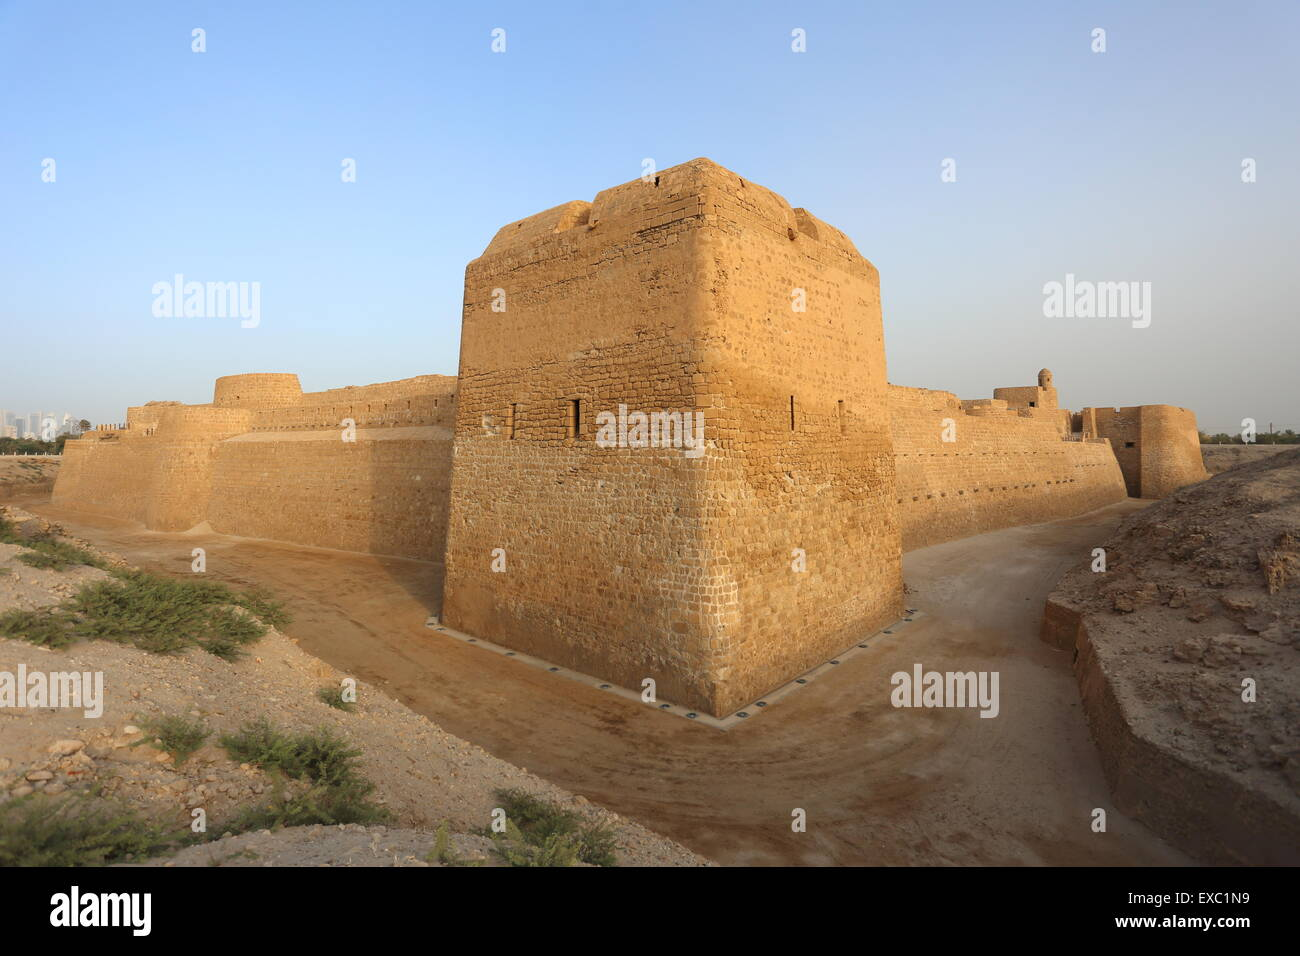 Fortified walls and moat of the Bahrain Fort, Kingdom of Bahrain - Stock Image